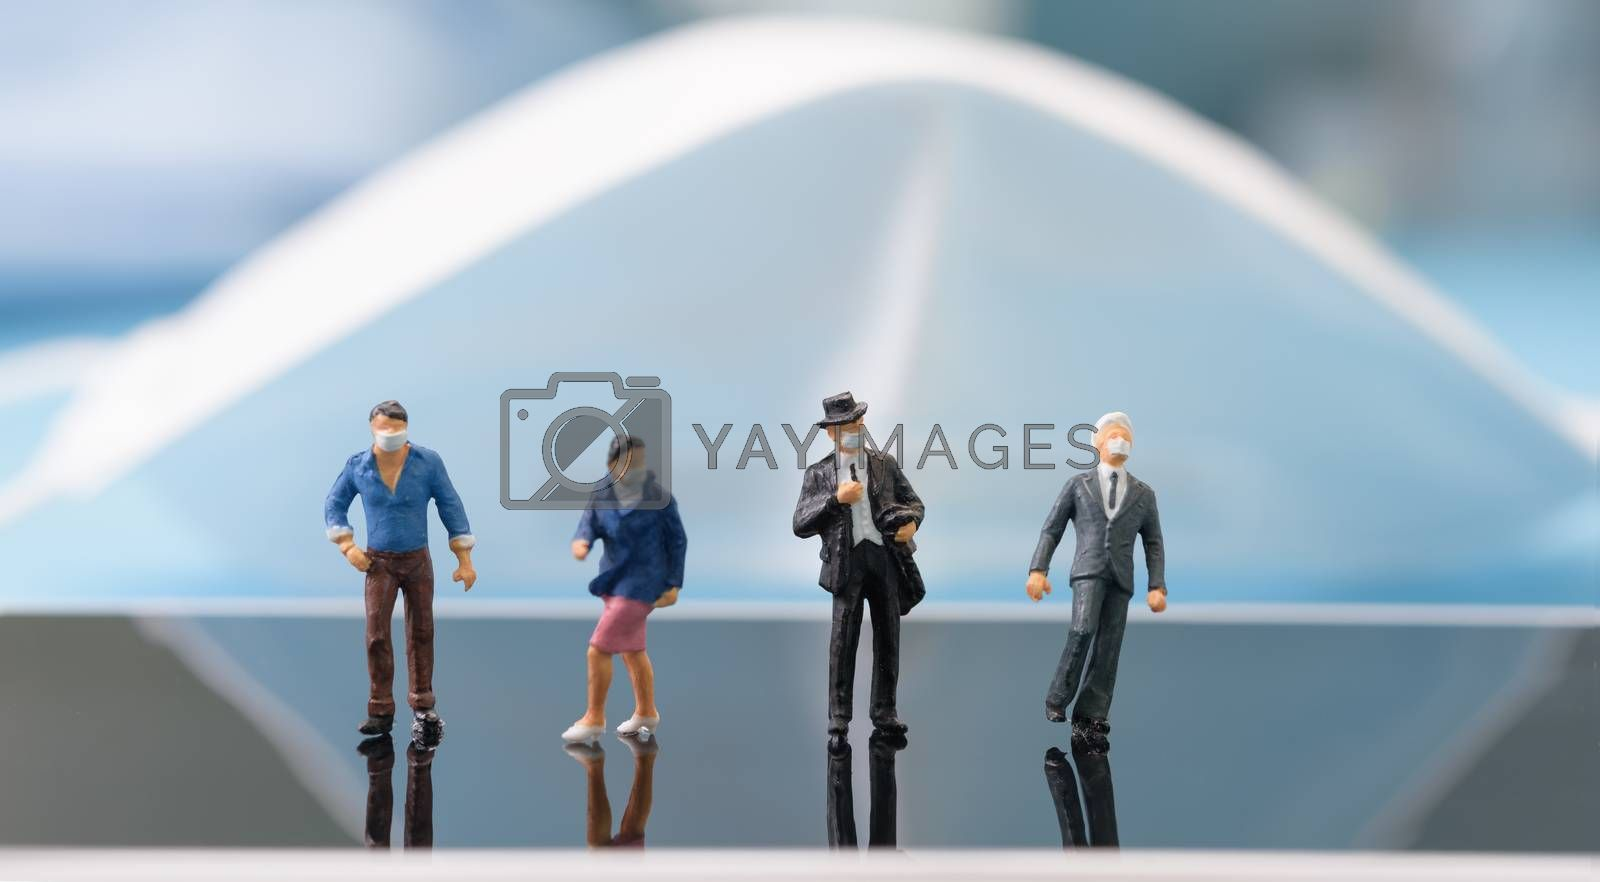 Miniture business people wear mask stand on mobile phone over blue background,due to  Pandemic coronavirus(COVID-19) conceptual.